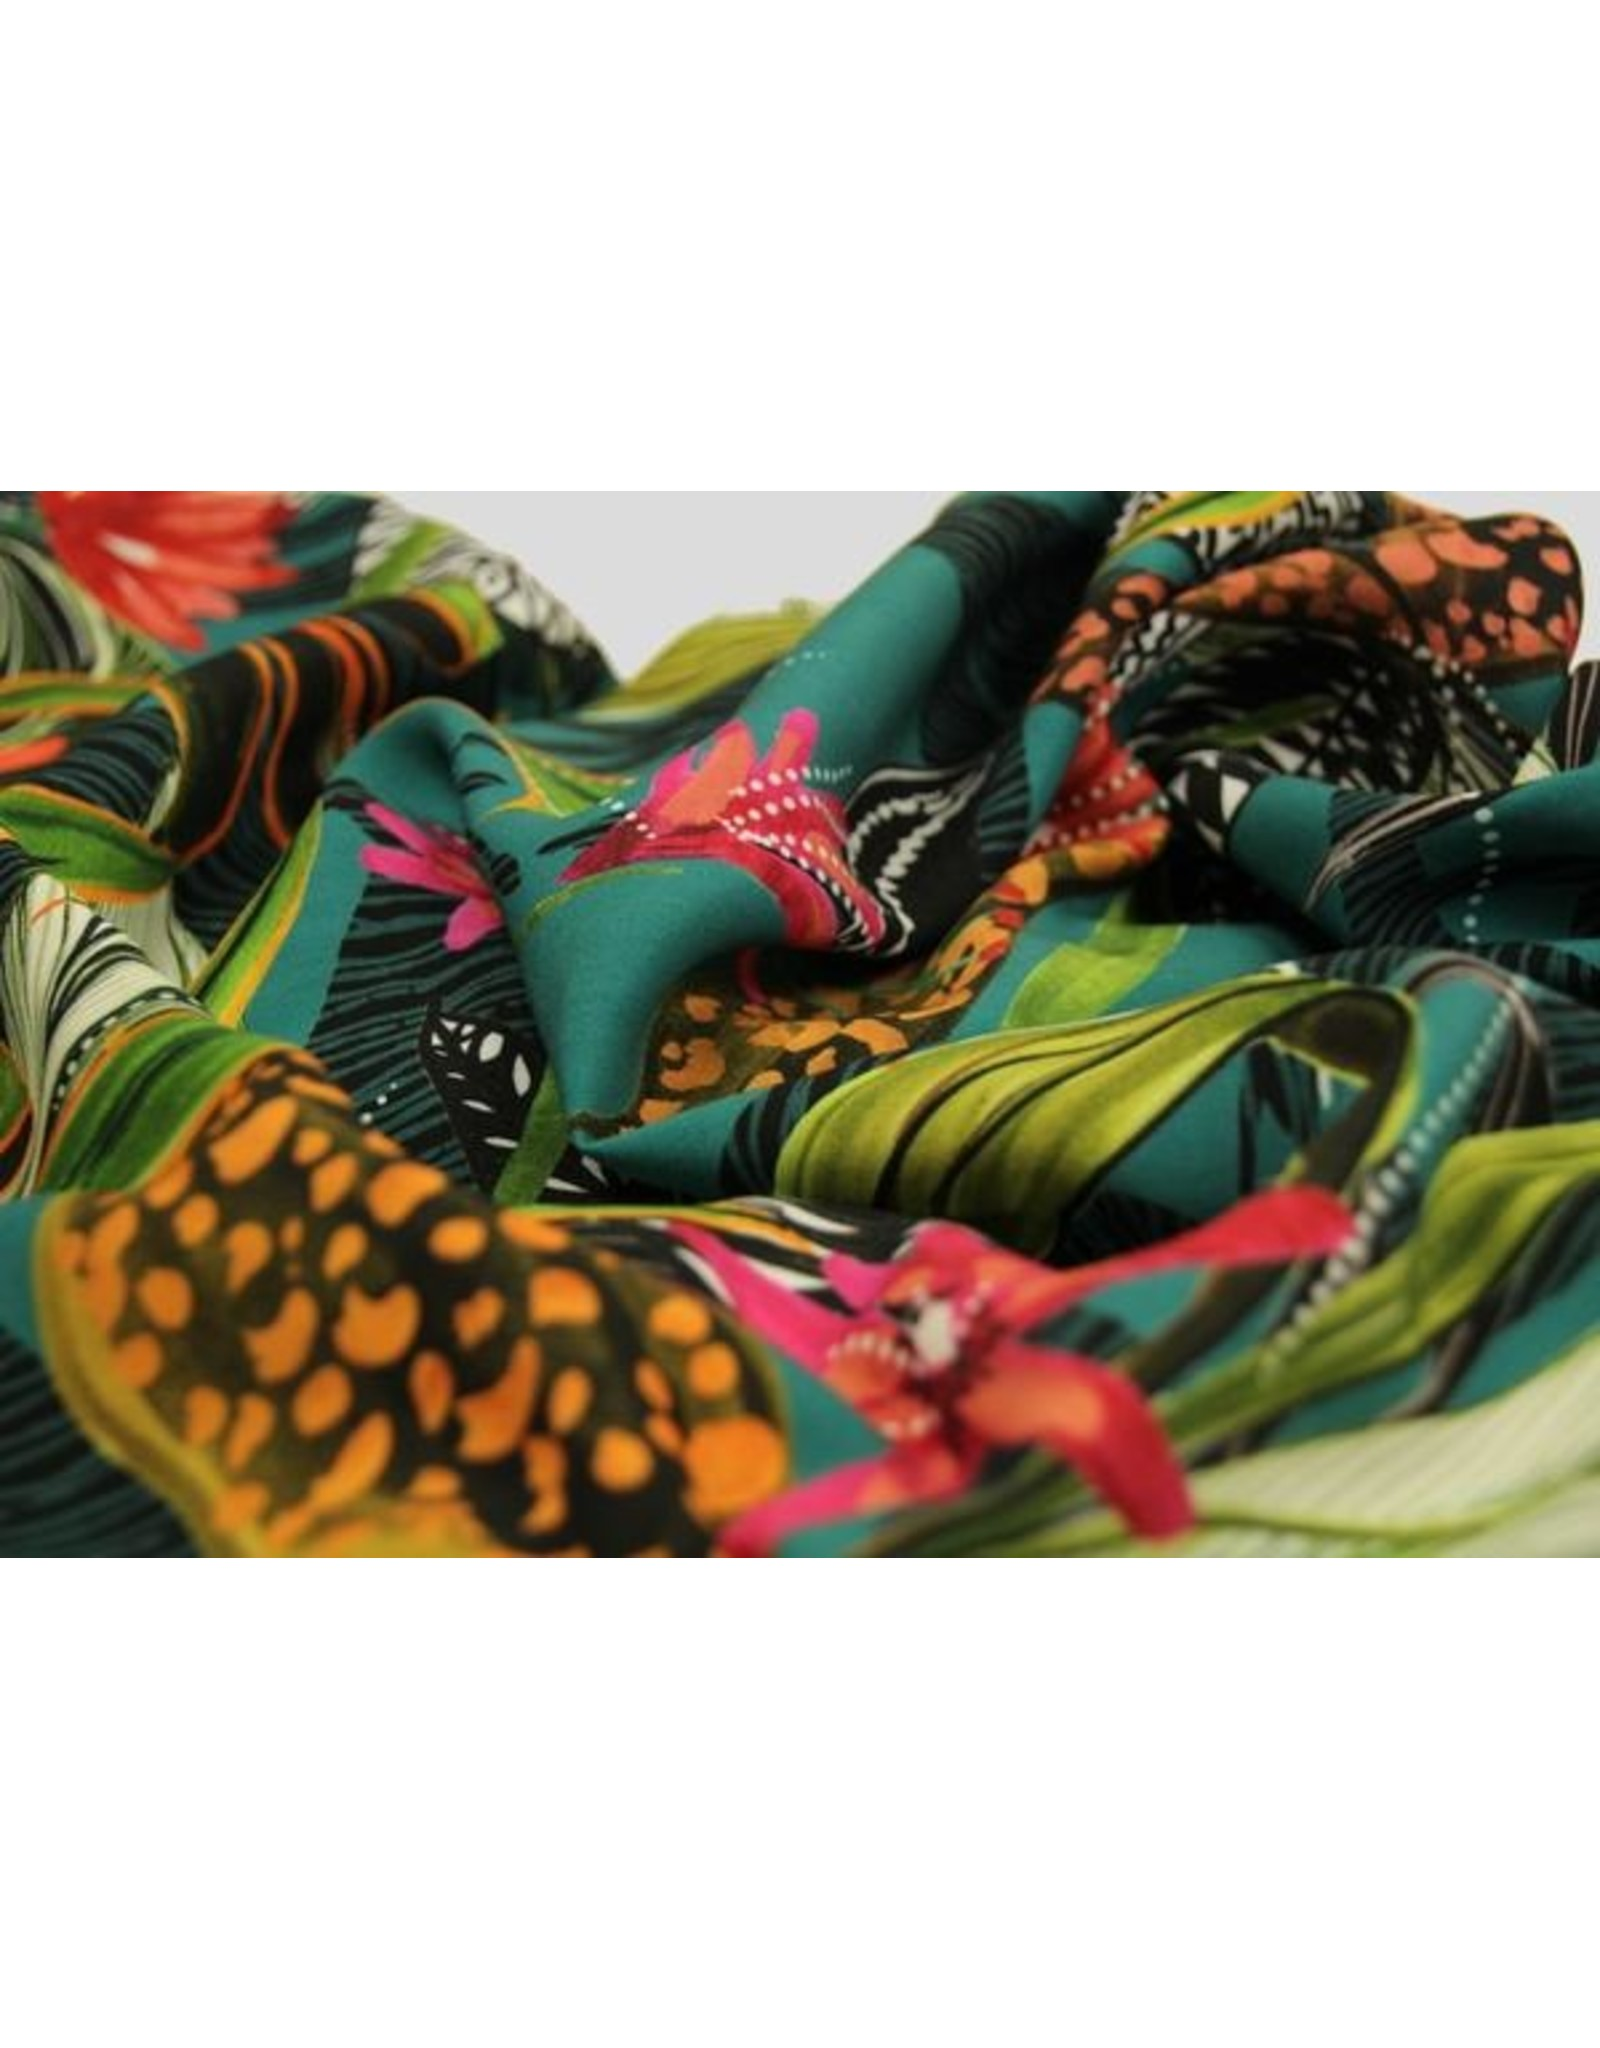 Atelier Jupe Turqouise viscose with tropical print COUPON 1.10m